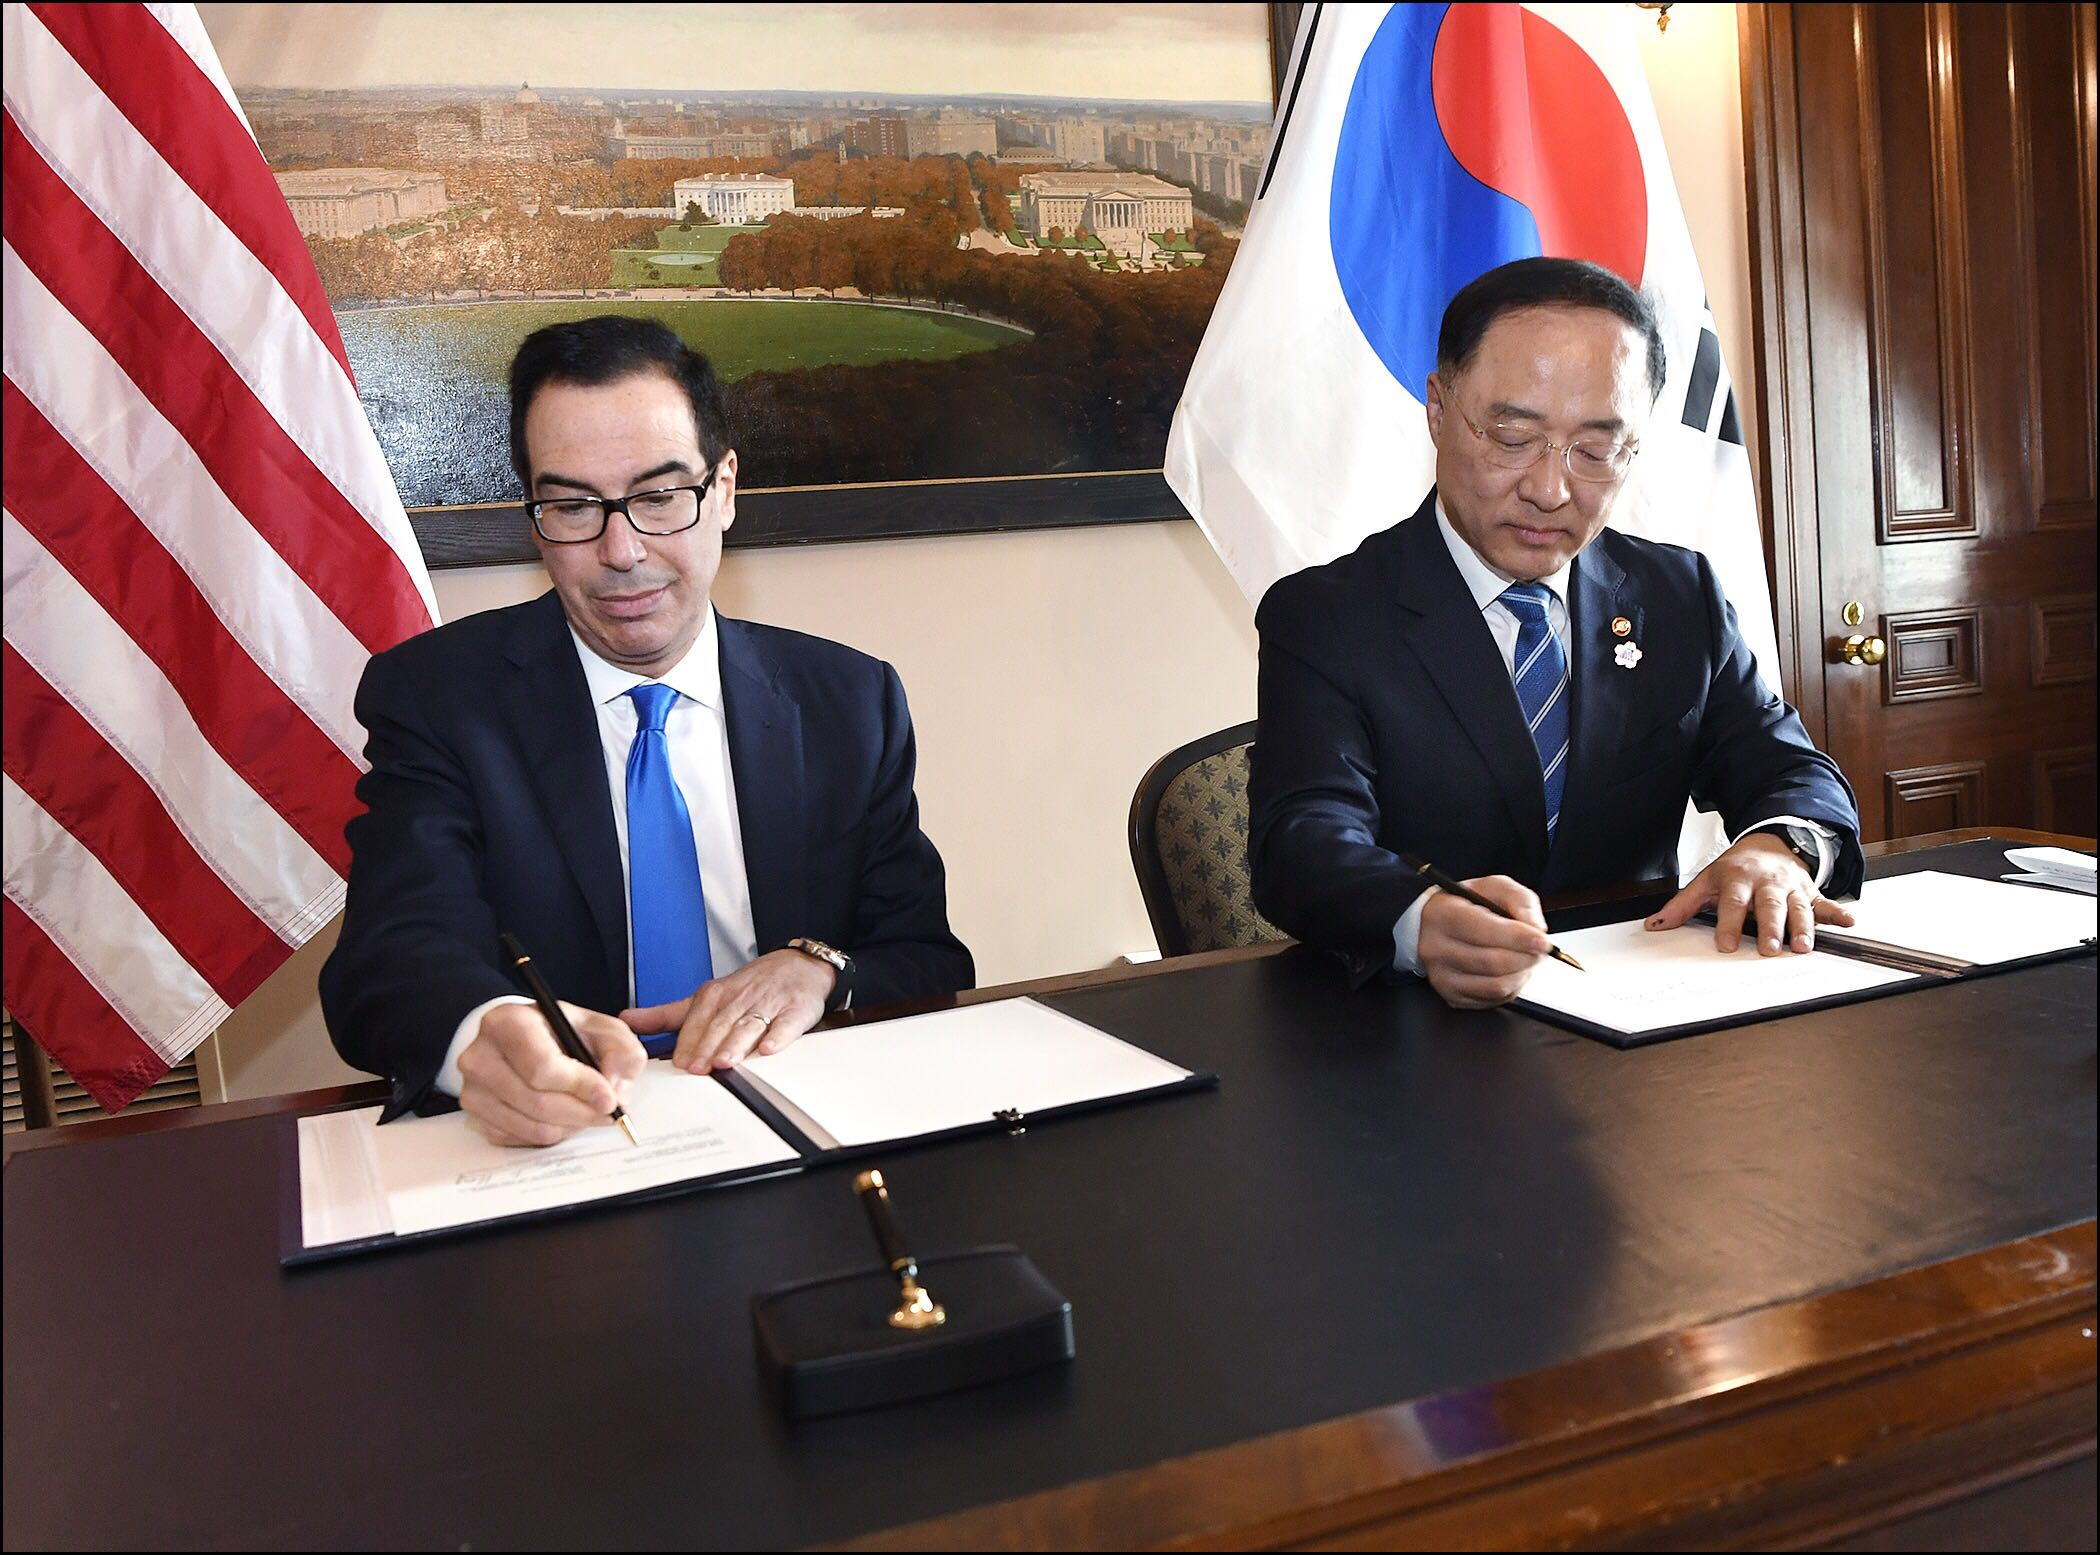 U.S. Secretary of the Treasury Steven T. Mnuchin and Korean Deputy Prime Minister and Finance Minister Hong Nam-ki sign a Memorandum of Understanding to Strengthen Infrastructure Finance and Market Building Cooperation. Photo credit: U.S. Department of the Treasury, October 17, 2019